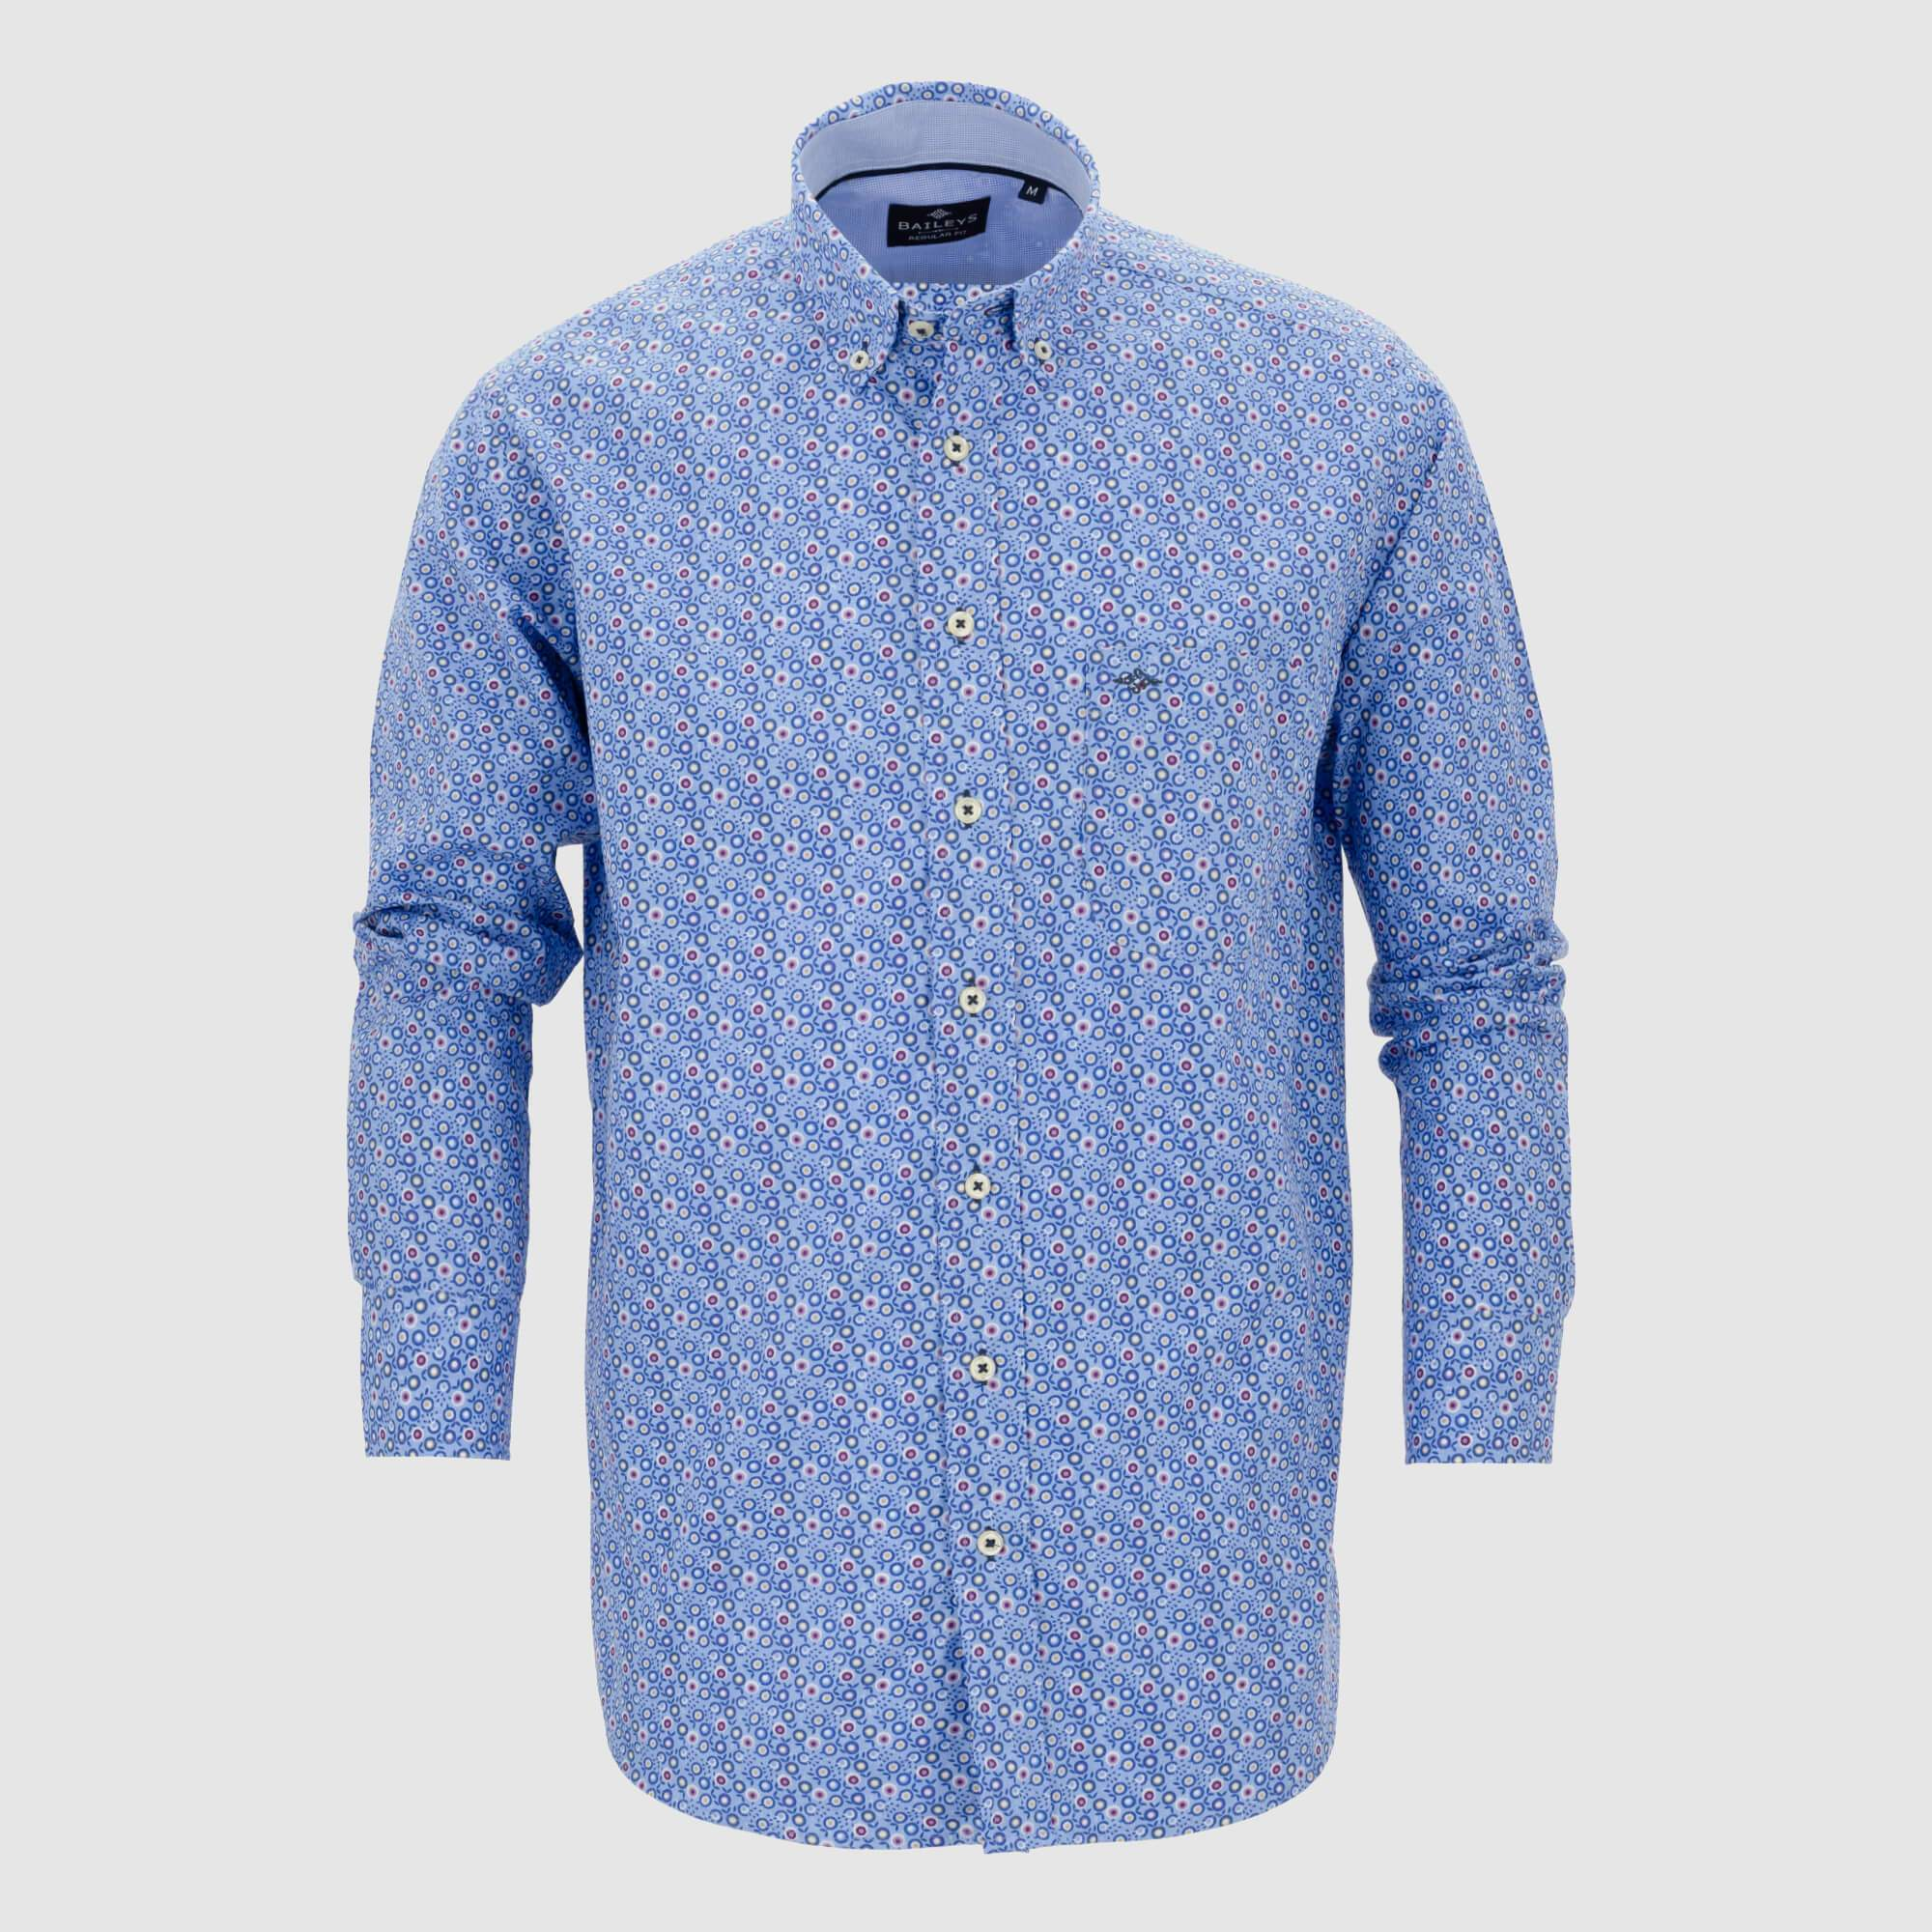 Camisa estampada regular fit 107680